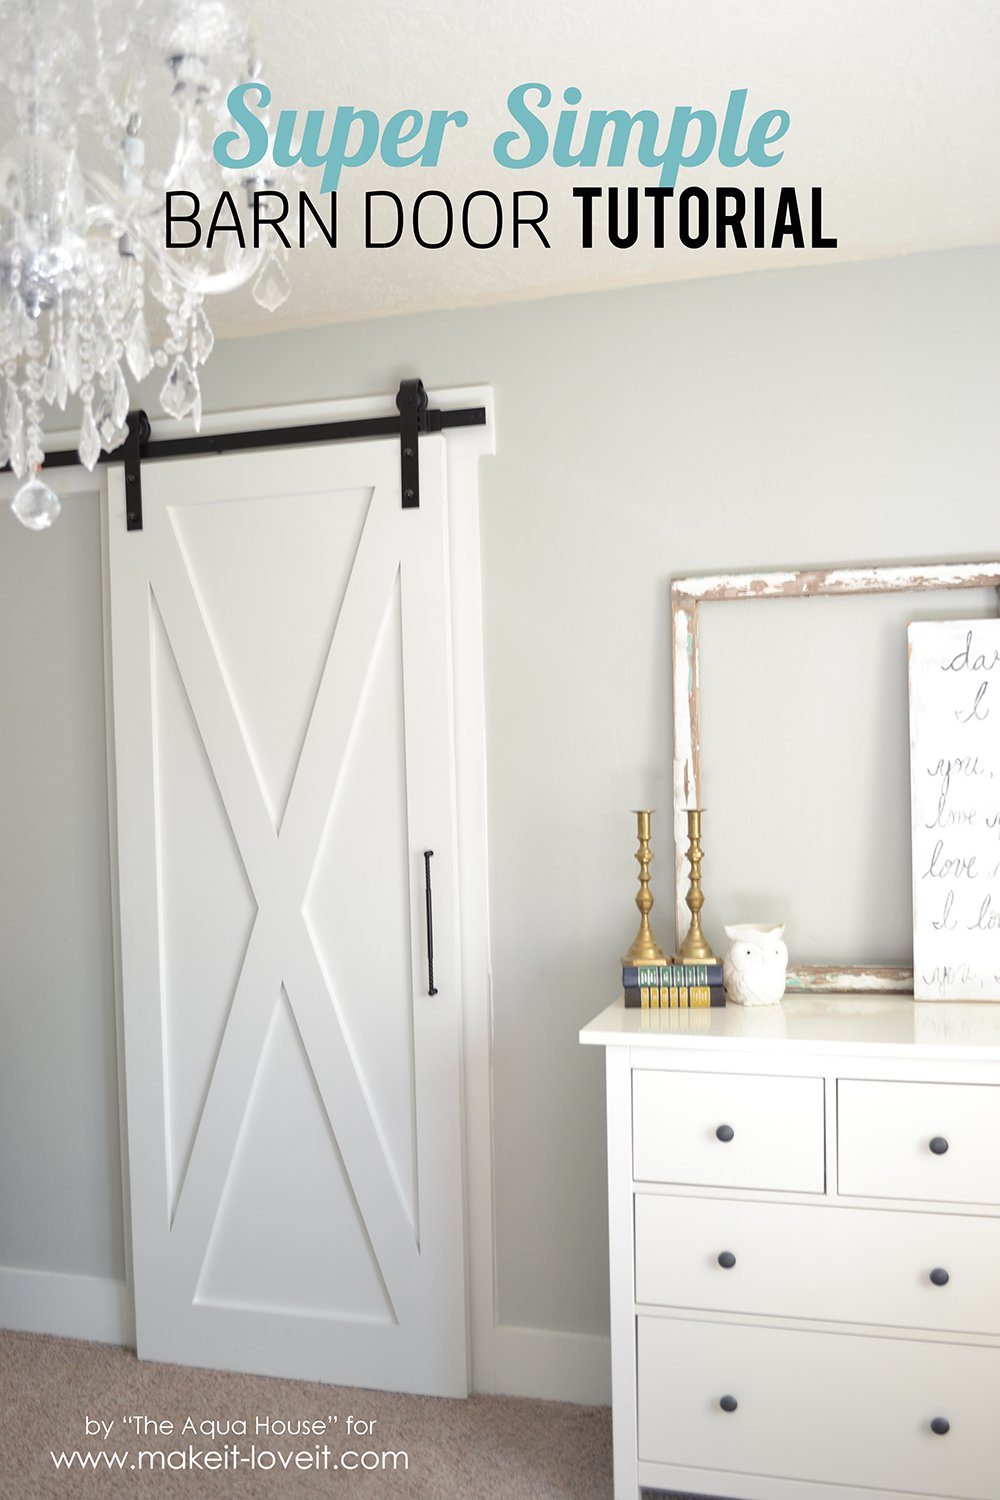 Super Simple Barn Door Tutorial